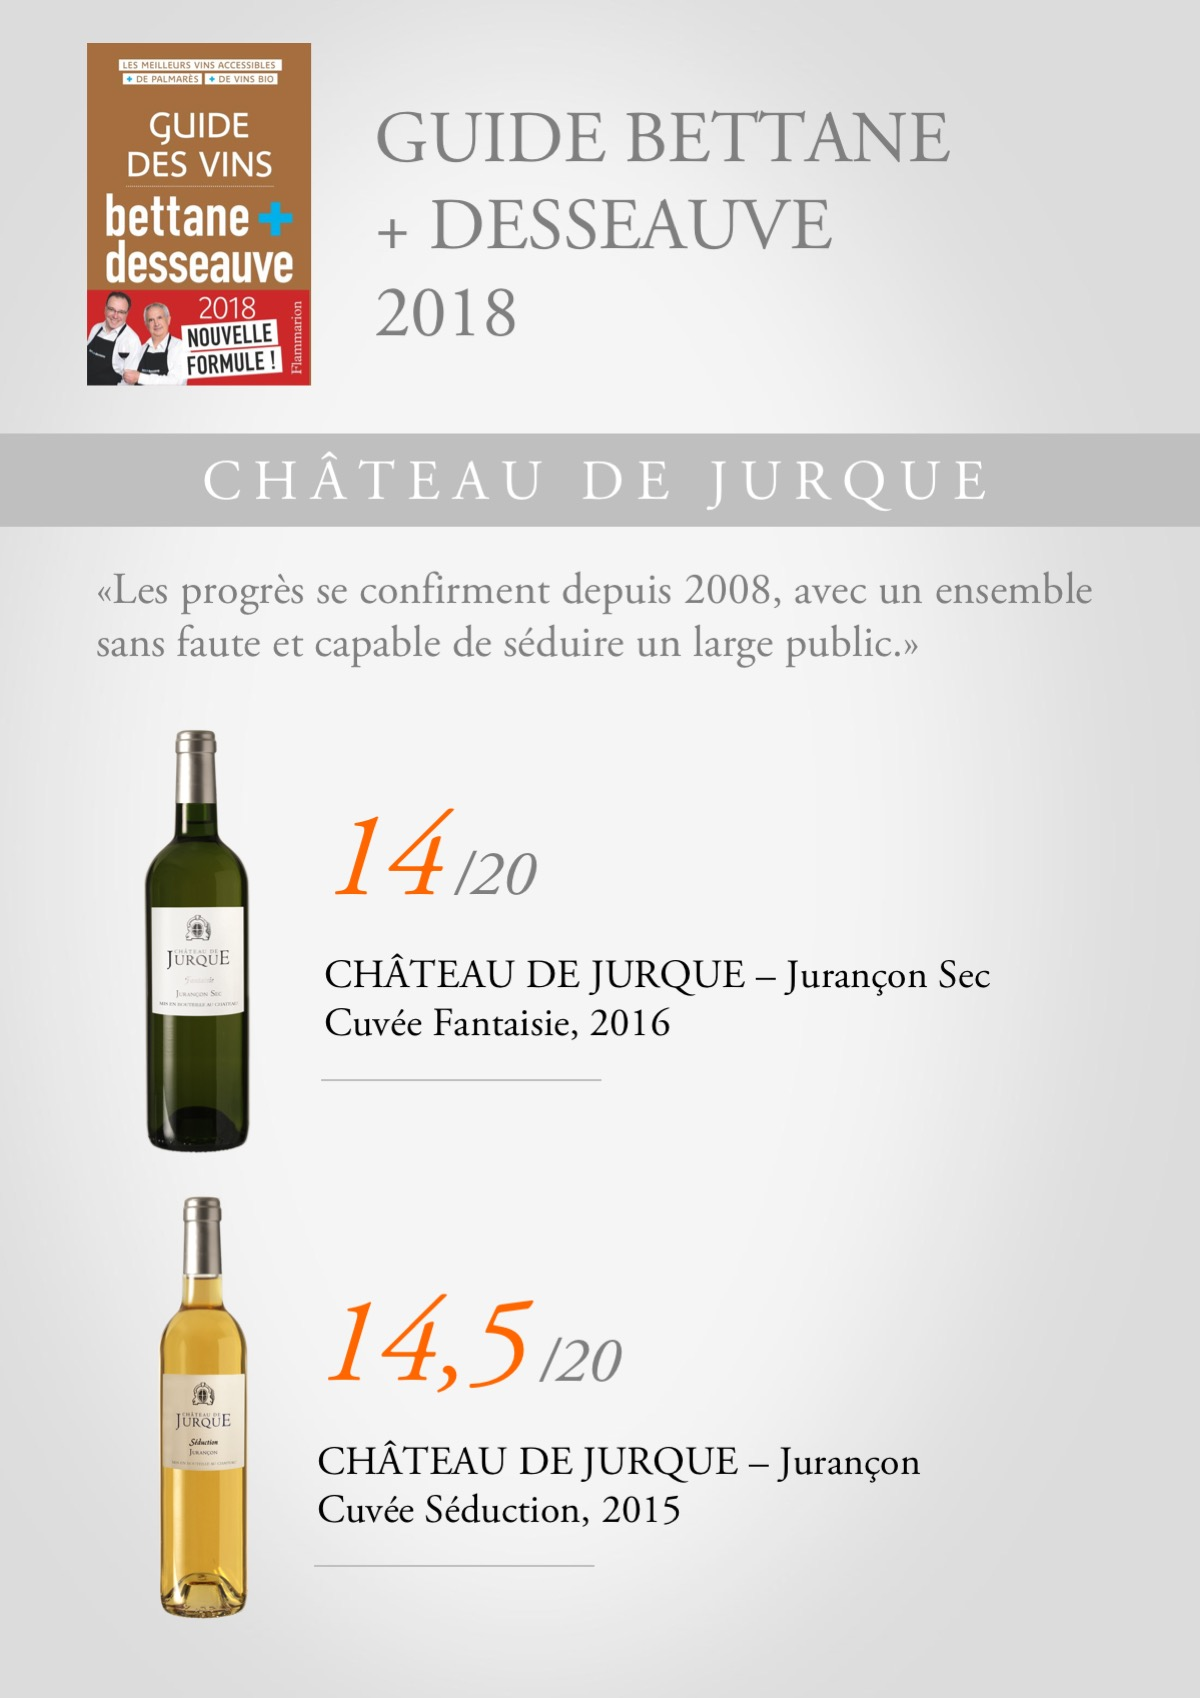 Guide Bettane et Desseauve 2018 Jurque